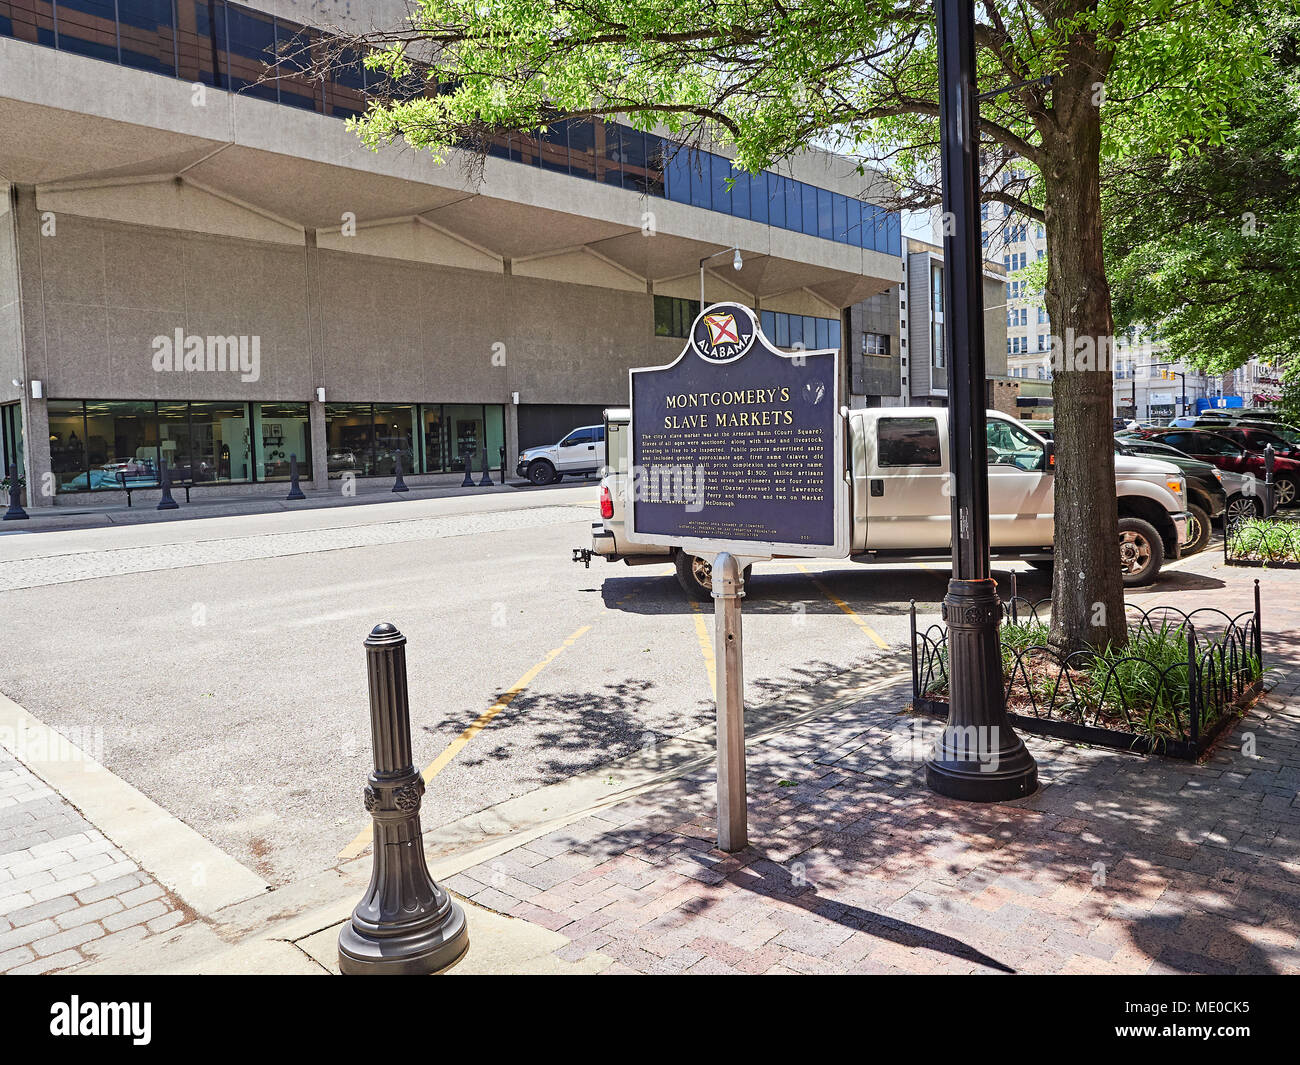 Historical marker describing the slave market or markets in Montgomery Alabama USA during the 1800's, also known as slave trade. - Stock Image